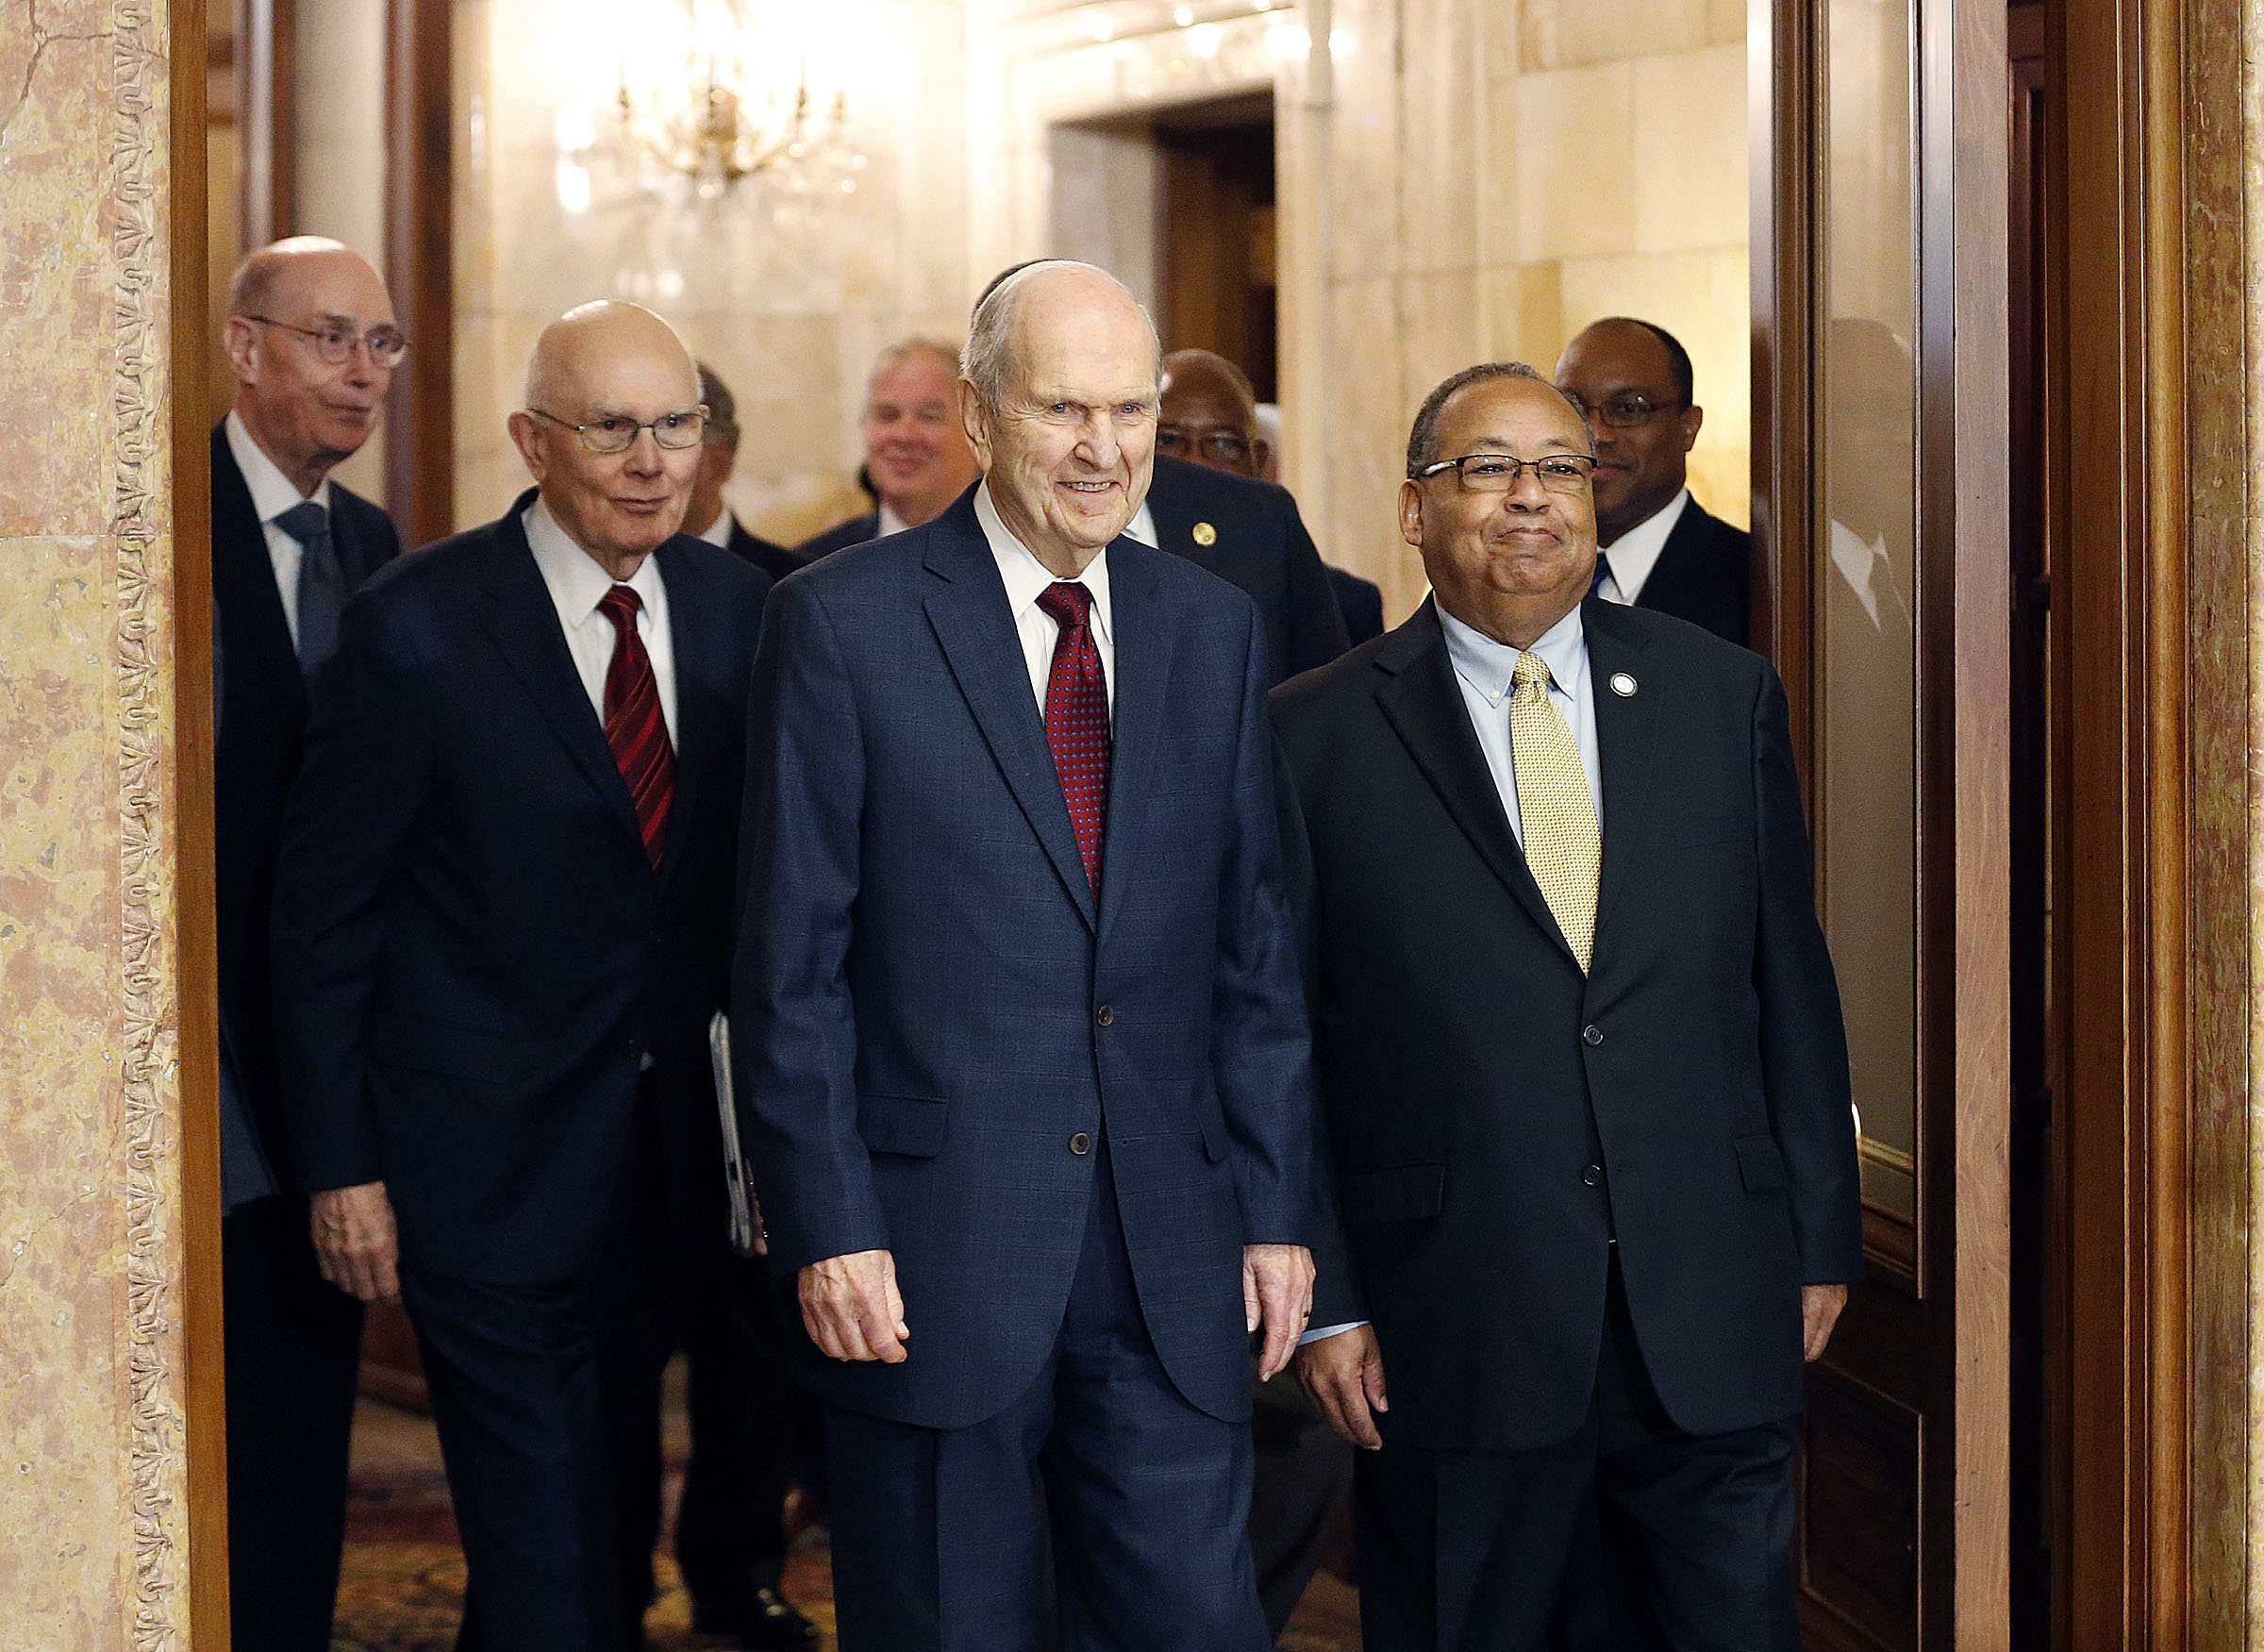 President Russell M. Nelson of The Church of Jesus Christ of Latter-day Saints walks to a press conference with Leon Russell, national chairman of the board of the NAACP, in the Church Administration Building in Salt Lake City on Thursday, May 17, 2018.